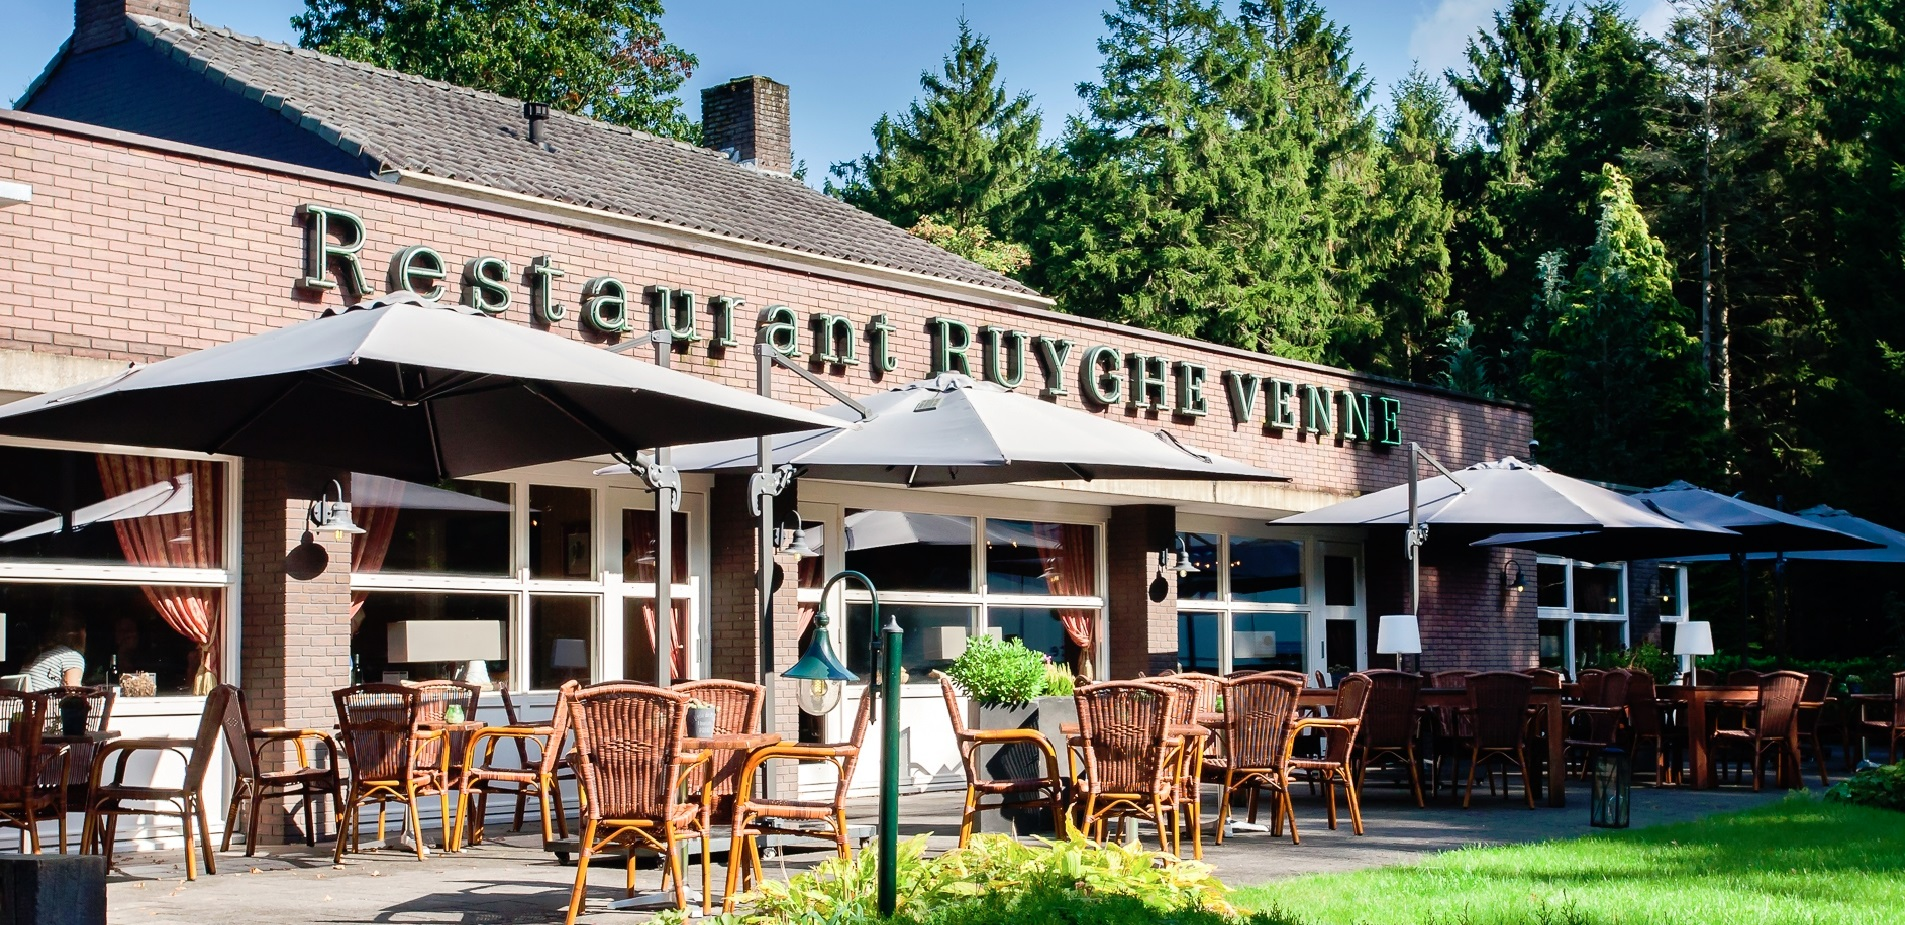 Hotels Coevorden Omgeving Hotel Restaurant Ruyghe Venne Lkgx Support Communicatie